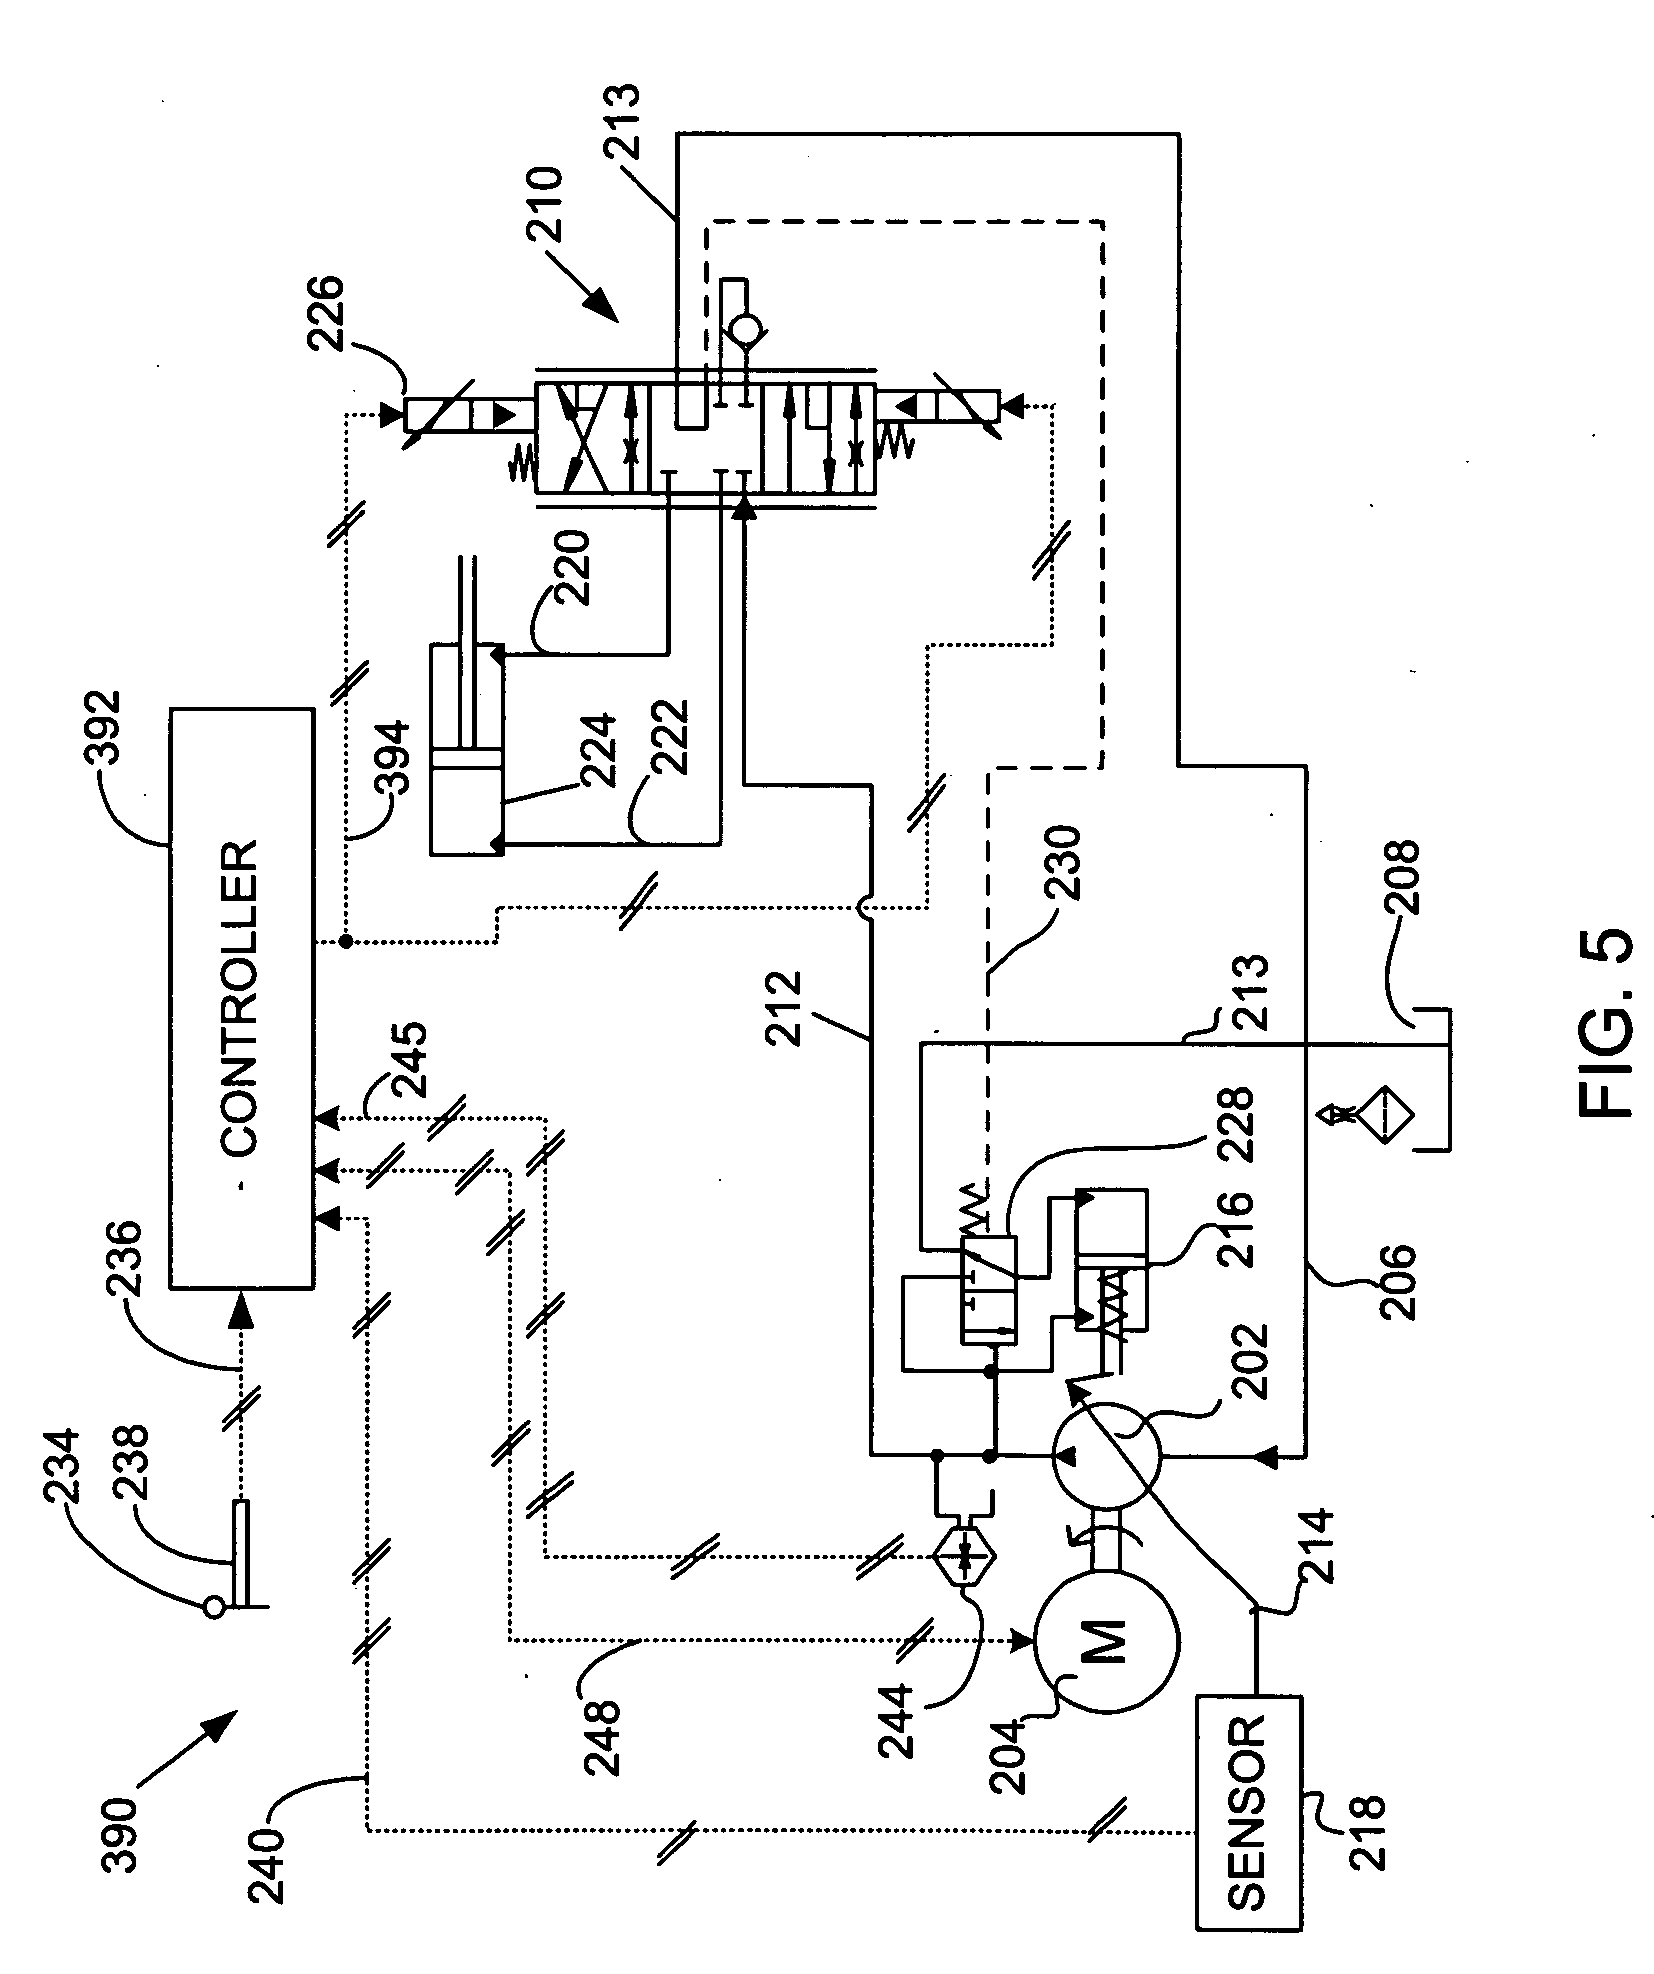 WZ00232 0000211 19 20101214 likewise Viewit besides Ignition in addition Viewit in addition International 424 Wiring Diagram. on m farmall wiring diagram